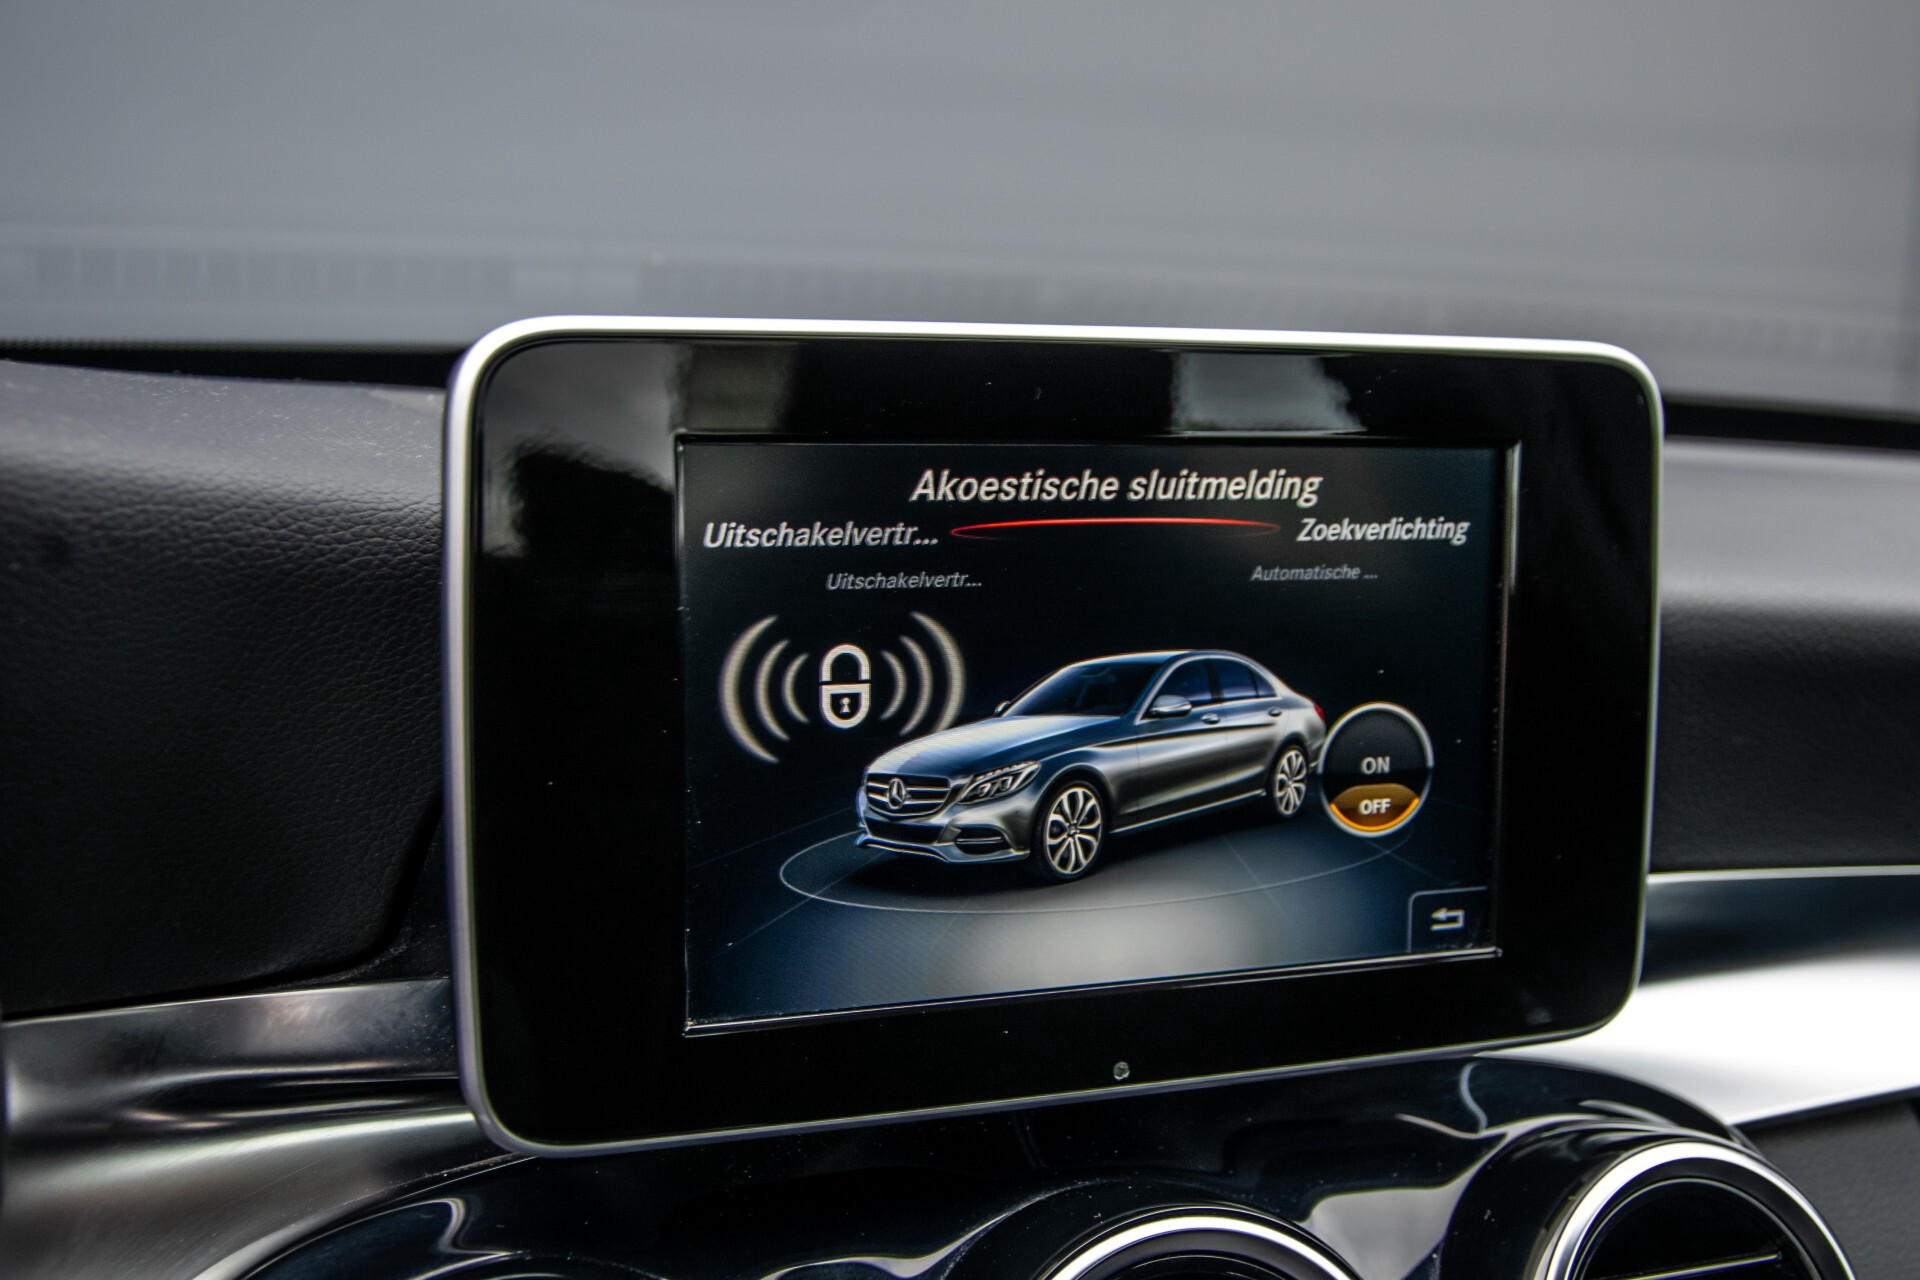 Mercedes-Benz C-Klasse 180 Bluetec Lease Edition Intelligent Light System/Cruise Control/Navi Foto 25